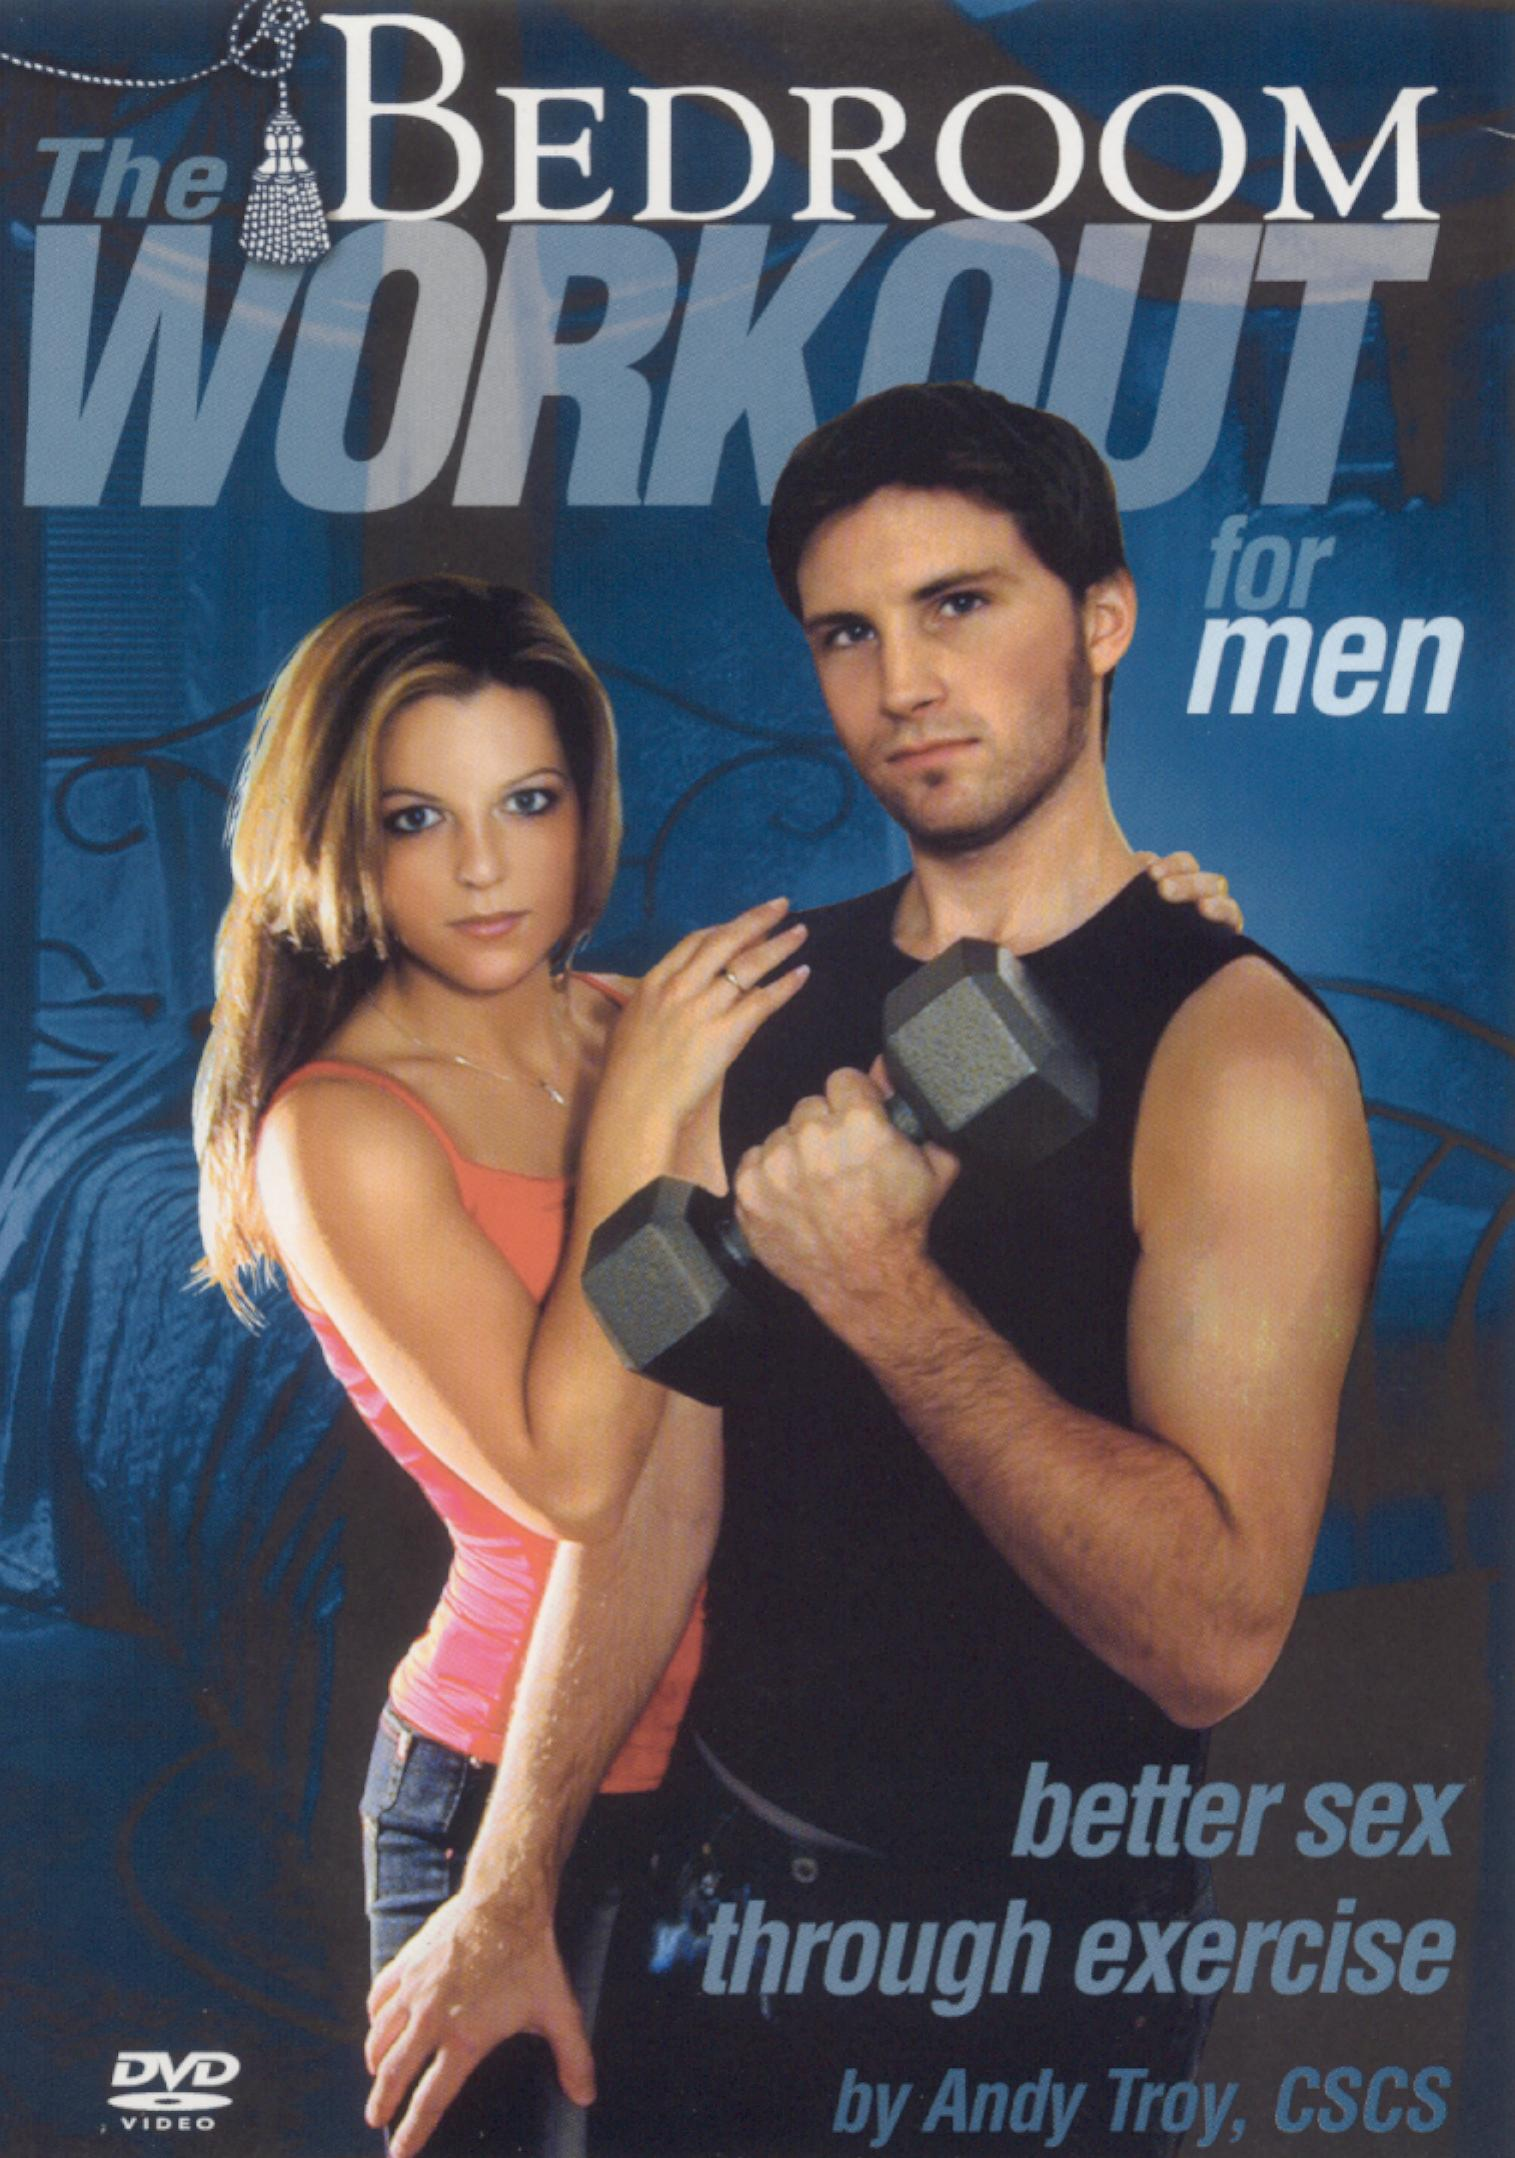 Bedroom Workout for Men: Better Sex Through Exercise